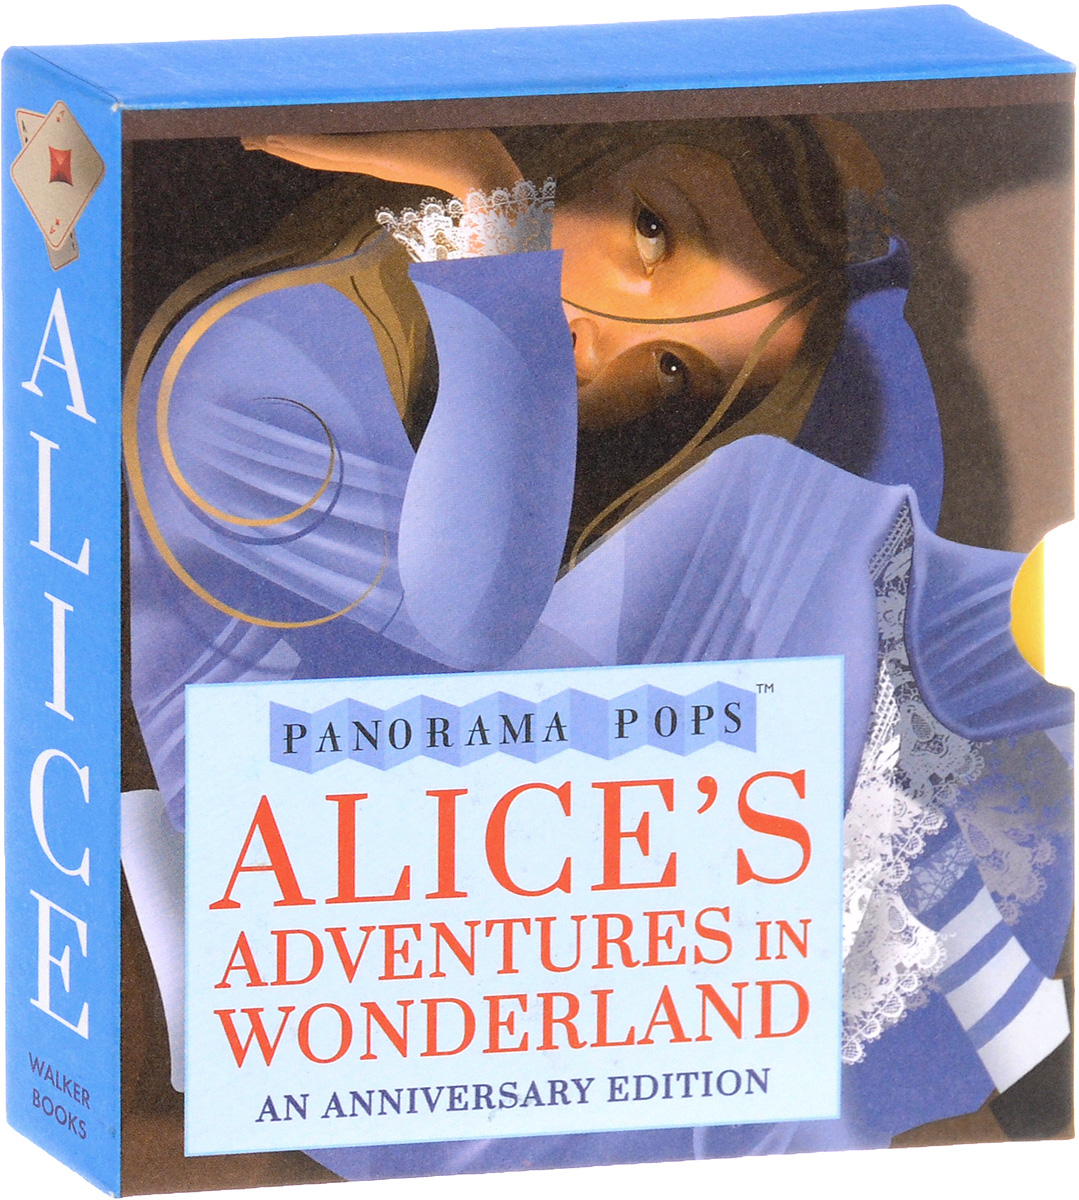 Alice's Adventures in Wonderland: Panorama Pops: An Anniversary Edition zenfone 2 deluxe special edition